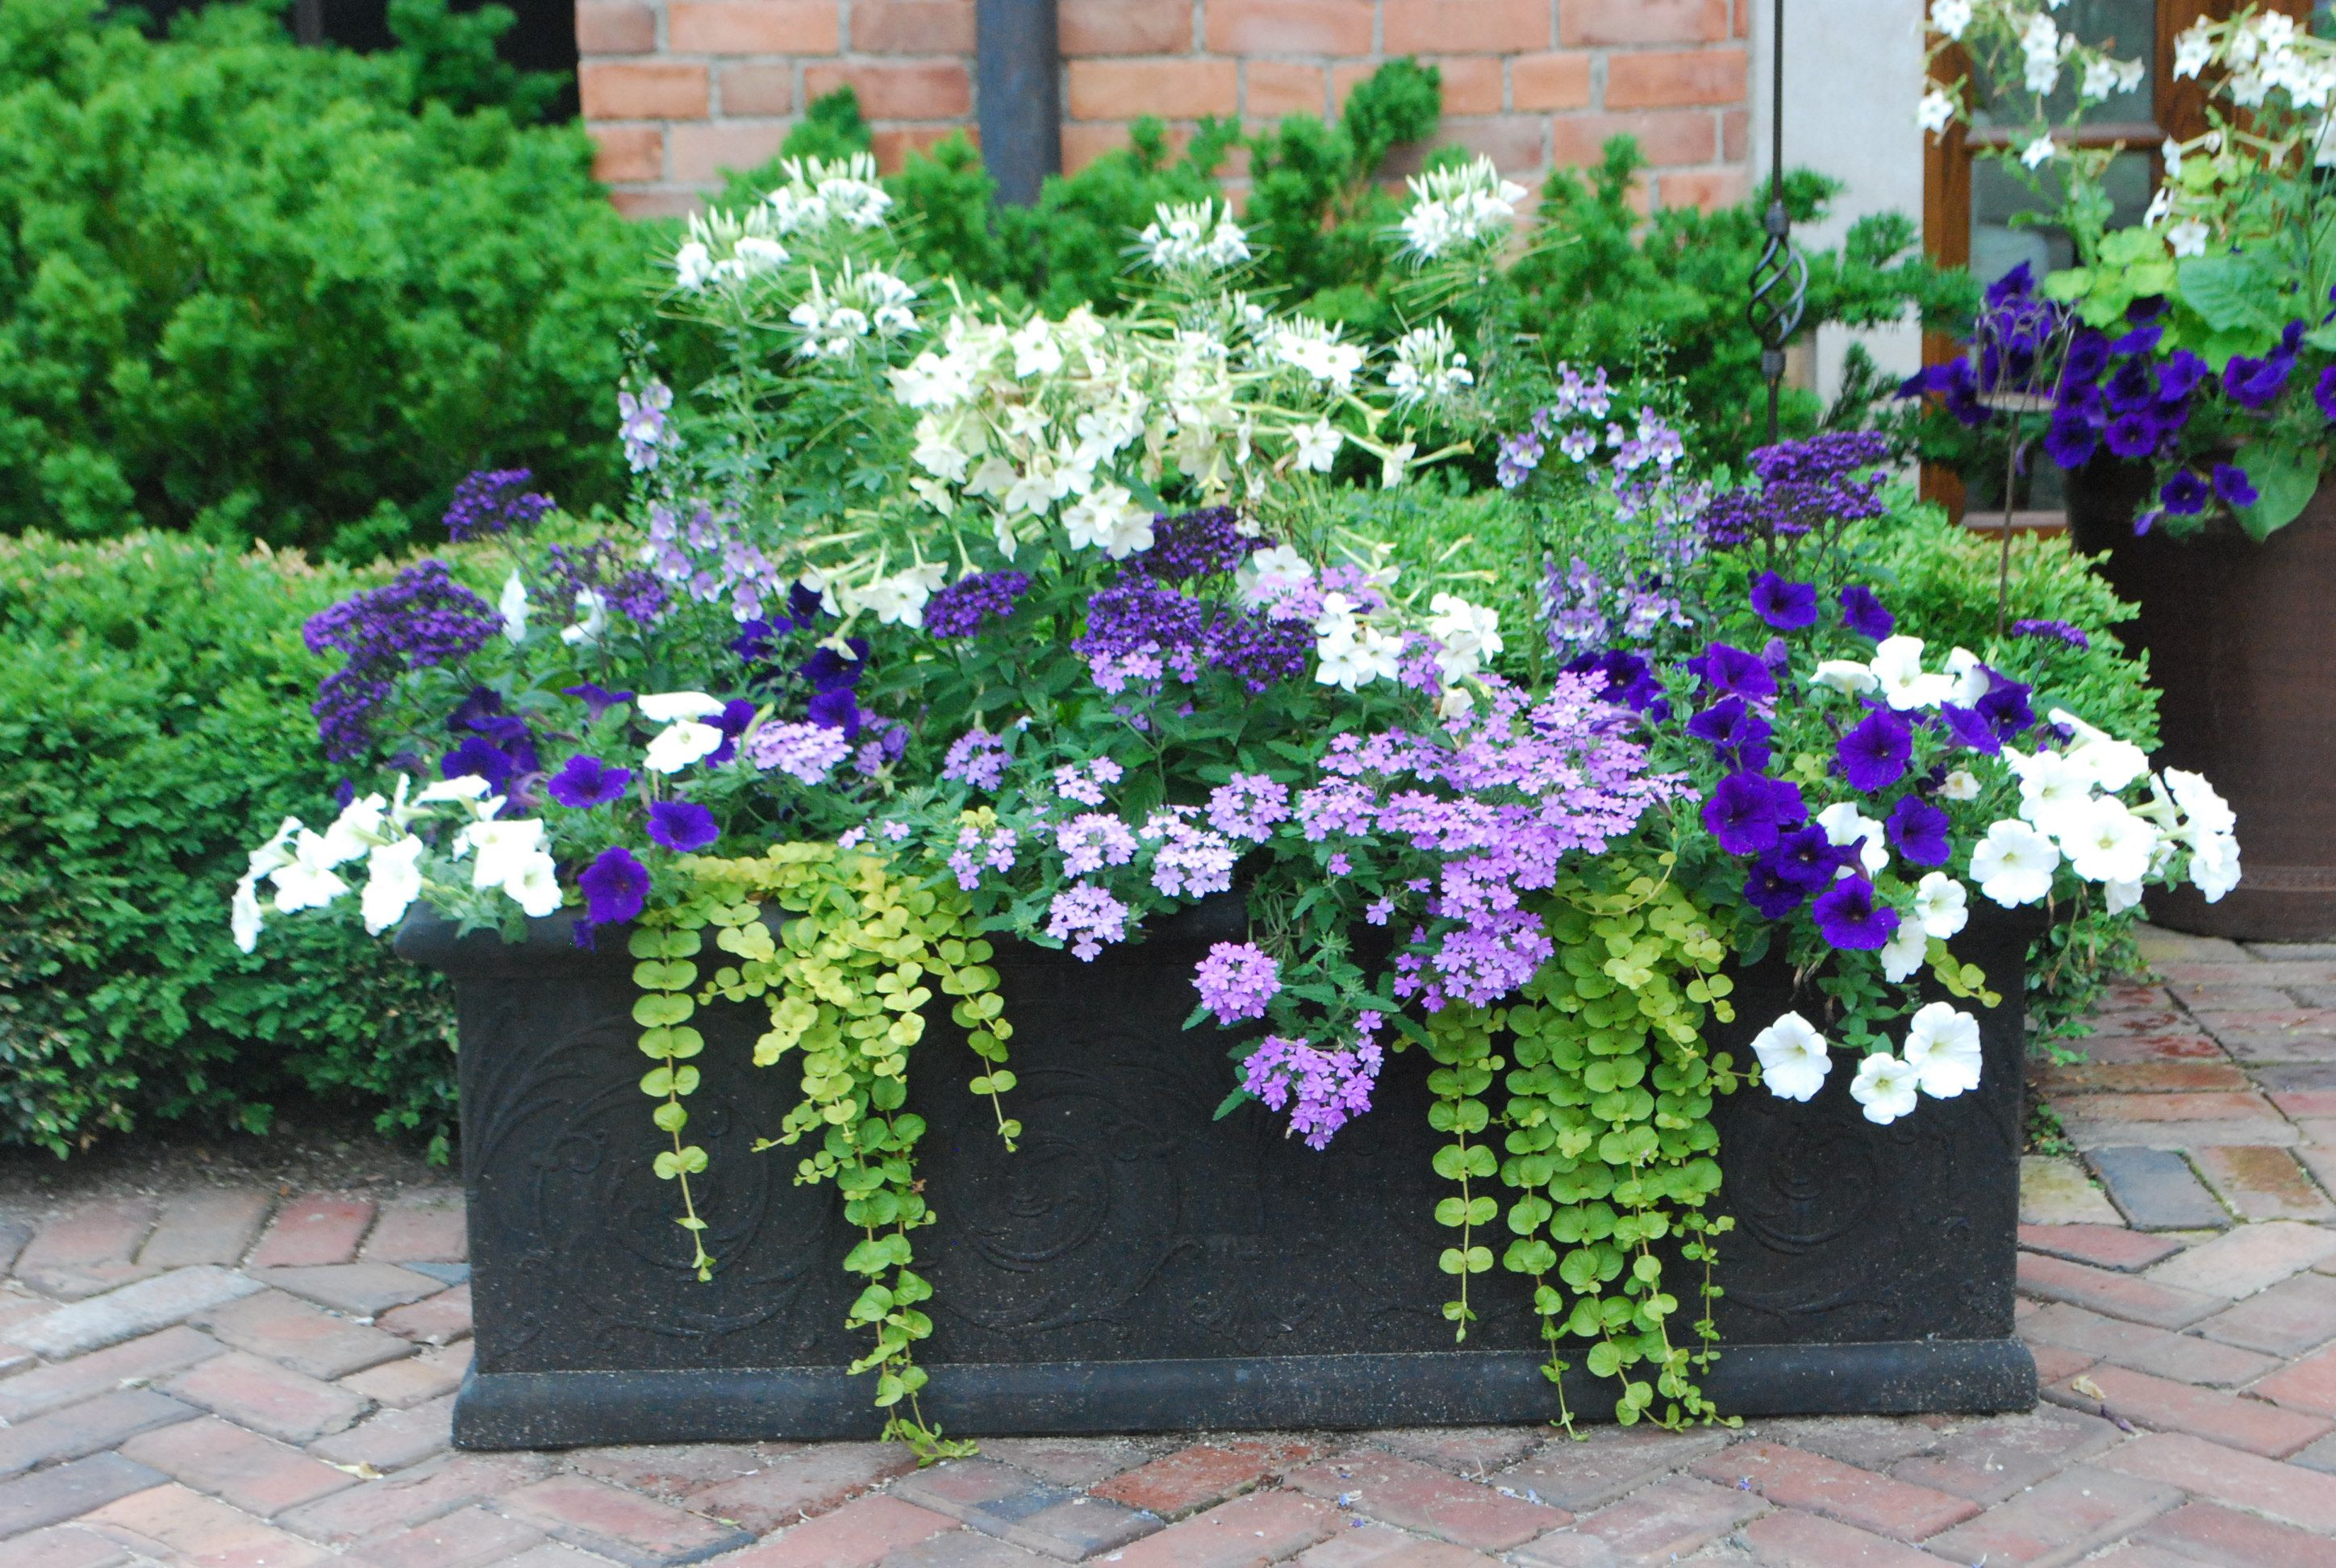 Do you plant flowers on mothers day good life of design my bb lavender and white summer plantingi dont usually like many combination plantings in containers probably partly because i group containers but i like izmirmasajfo